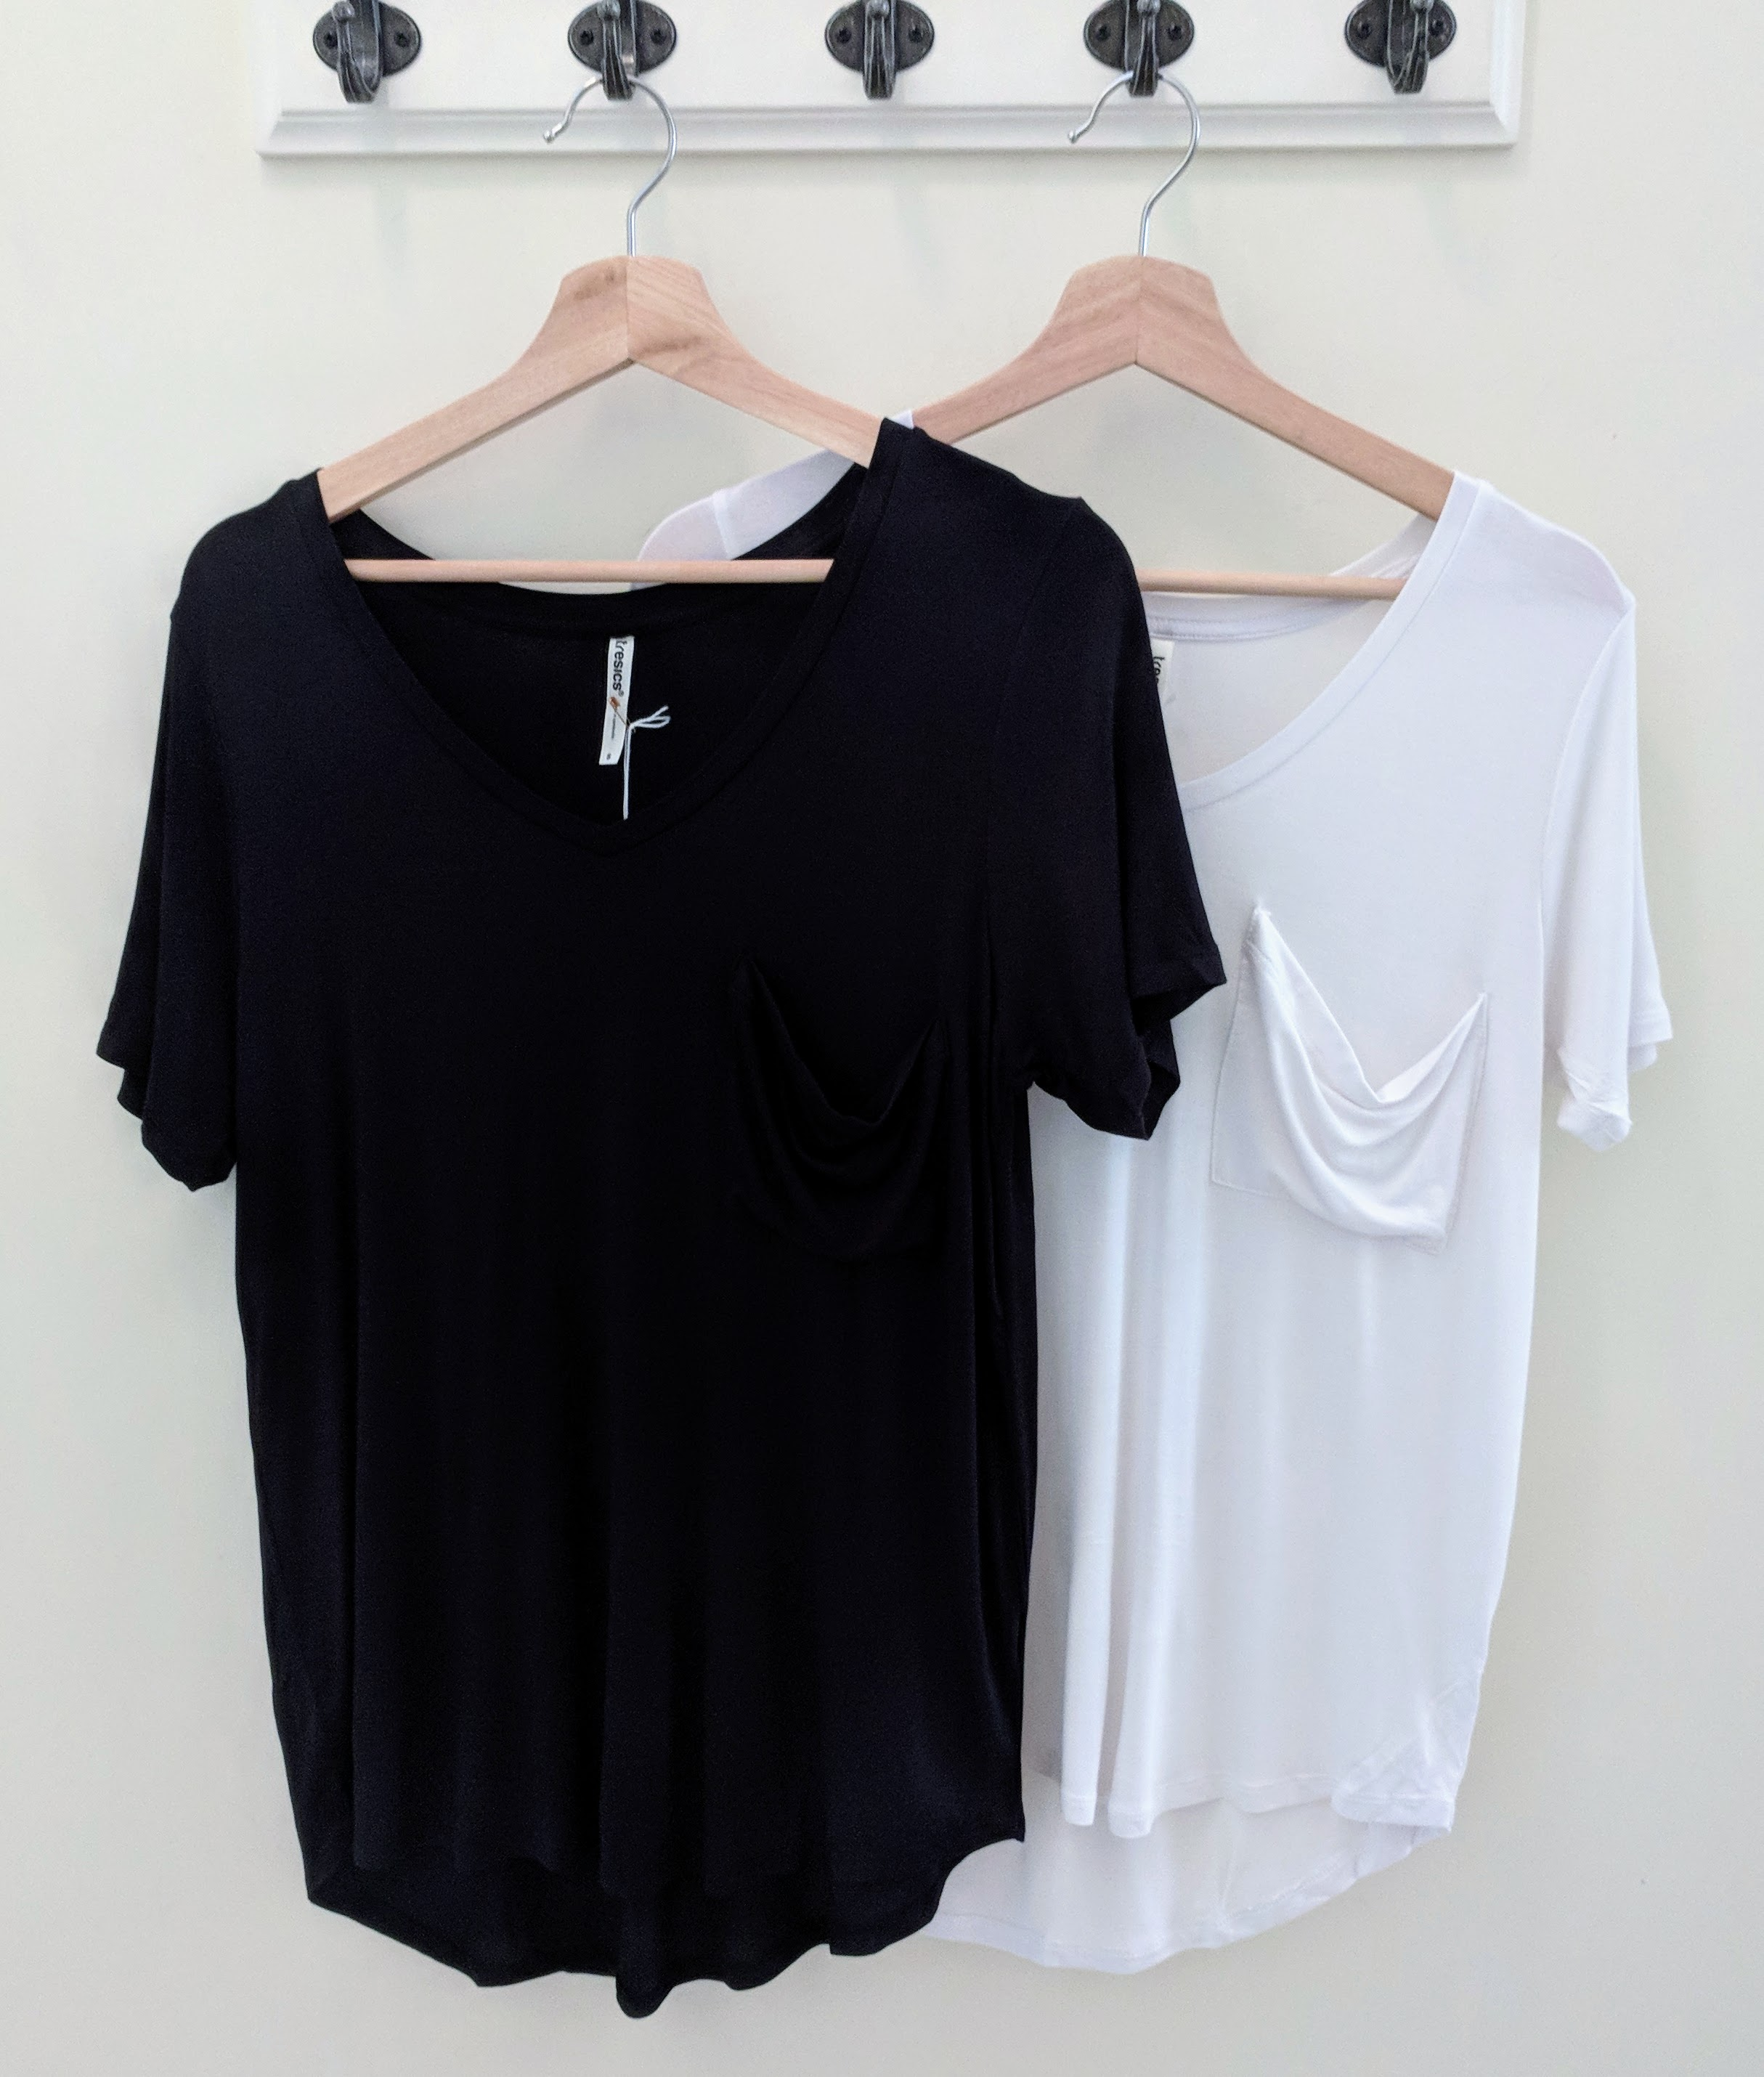 Short Sleeve Raglan Top w/ Front Pocket Black and White